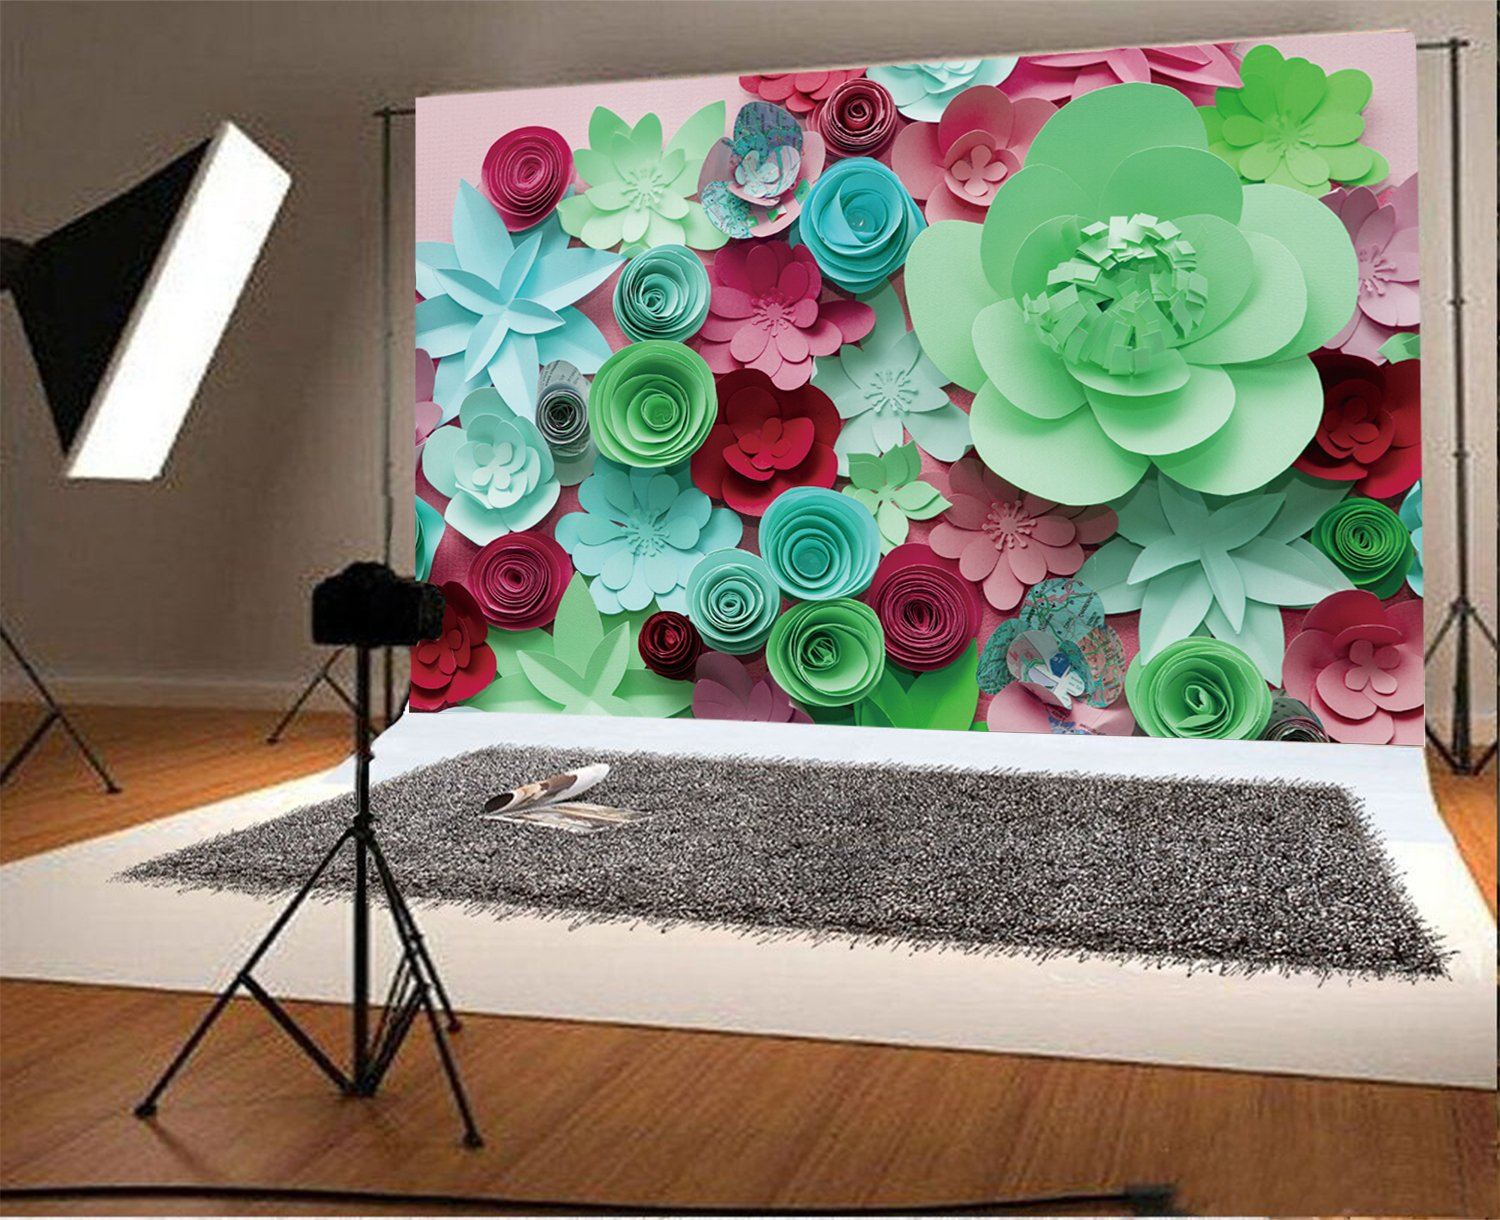 AOFOTO 7x5ft Valentines Day 3D Paper Flowers Backdrop Floral Gifts Birthday Party Decoration Wedding Ceremeny Anniversary Photography Background ...